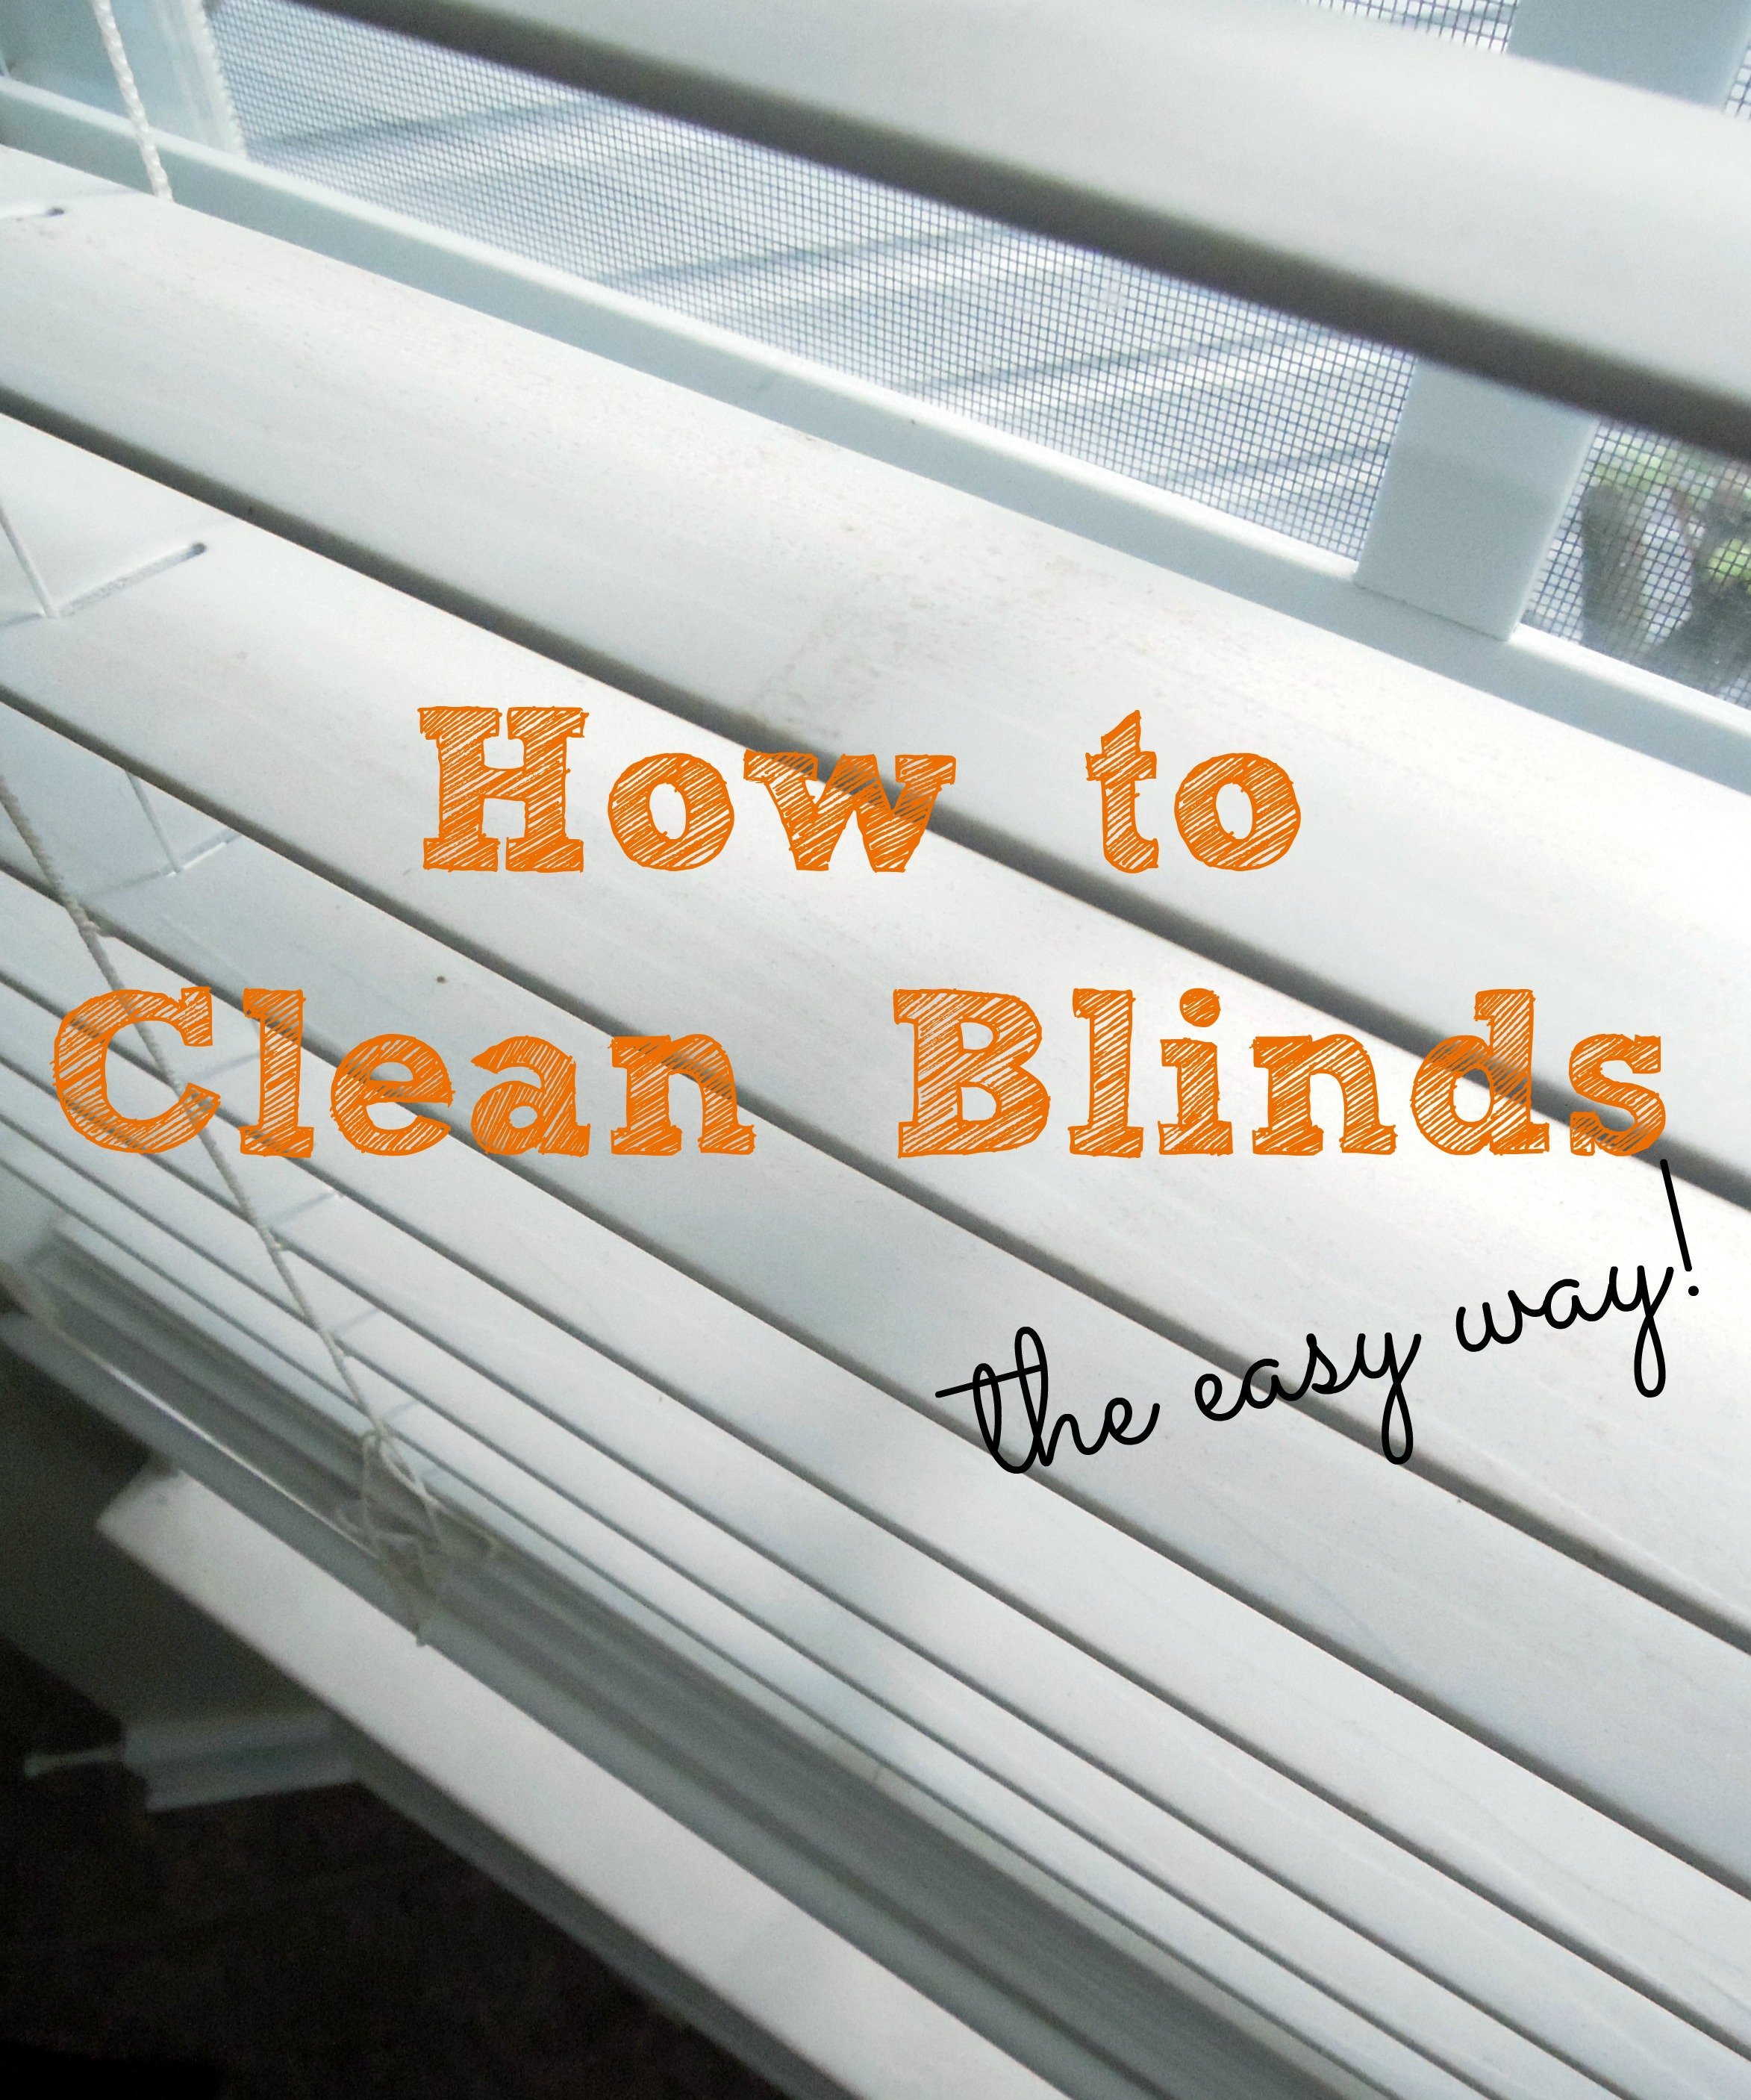 cleaning extraction blinds got process services injection dirty moser ultrasonic best blind our